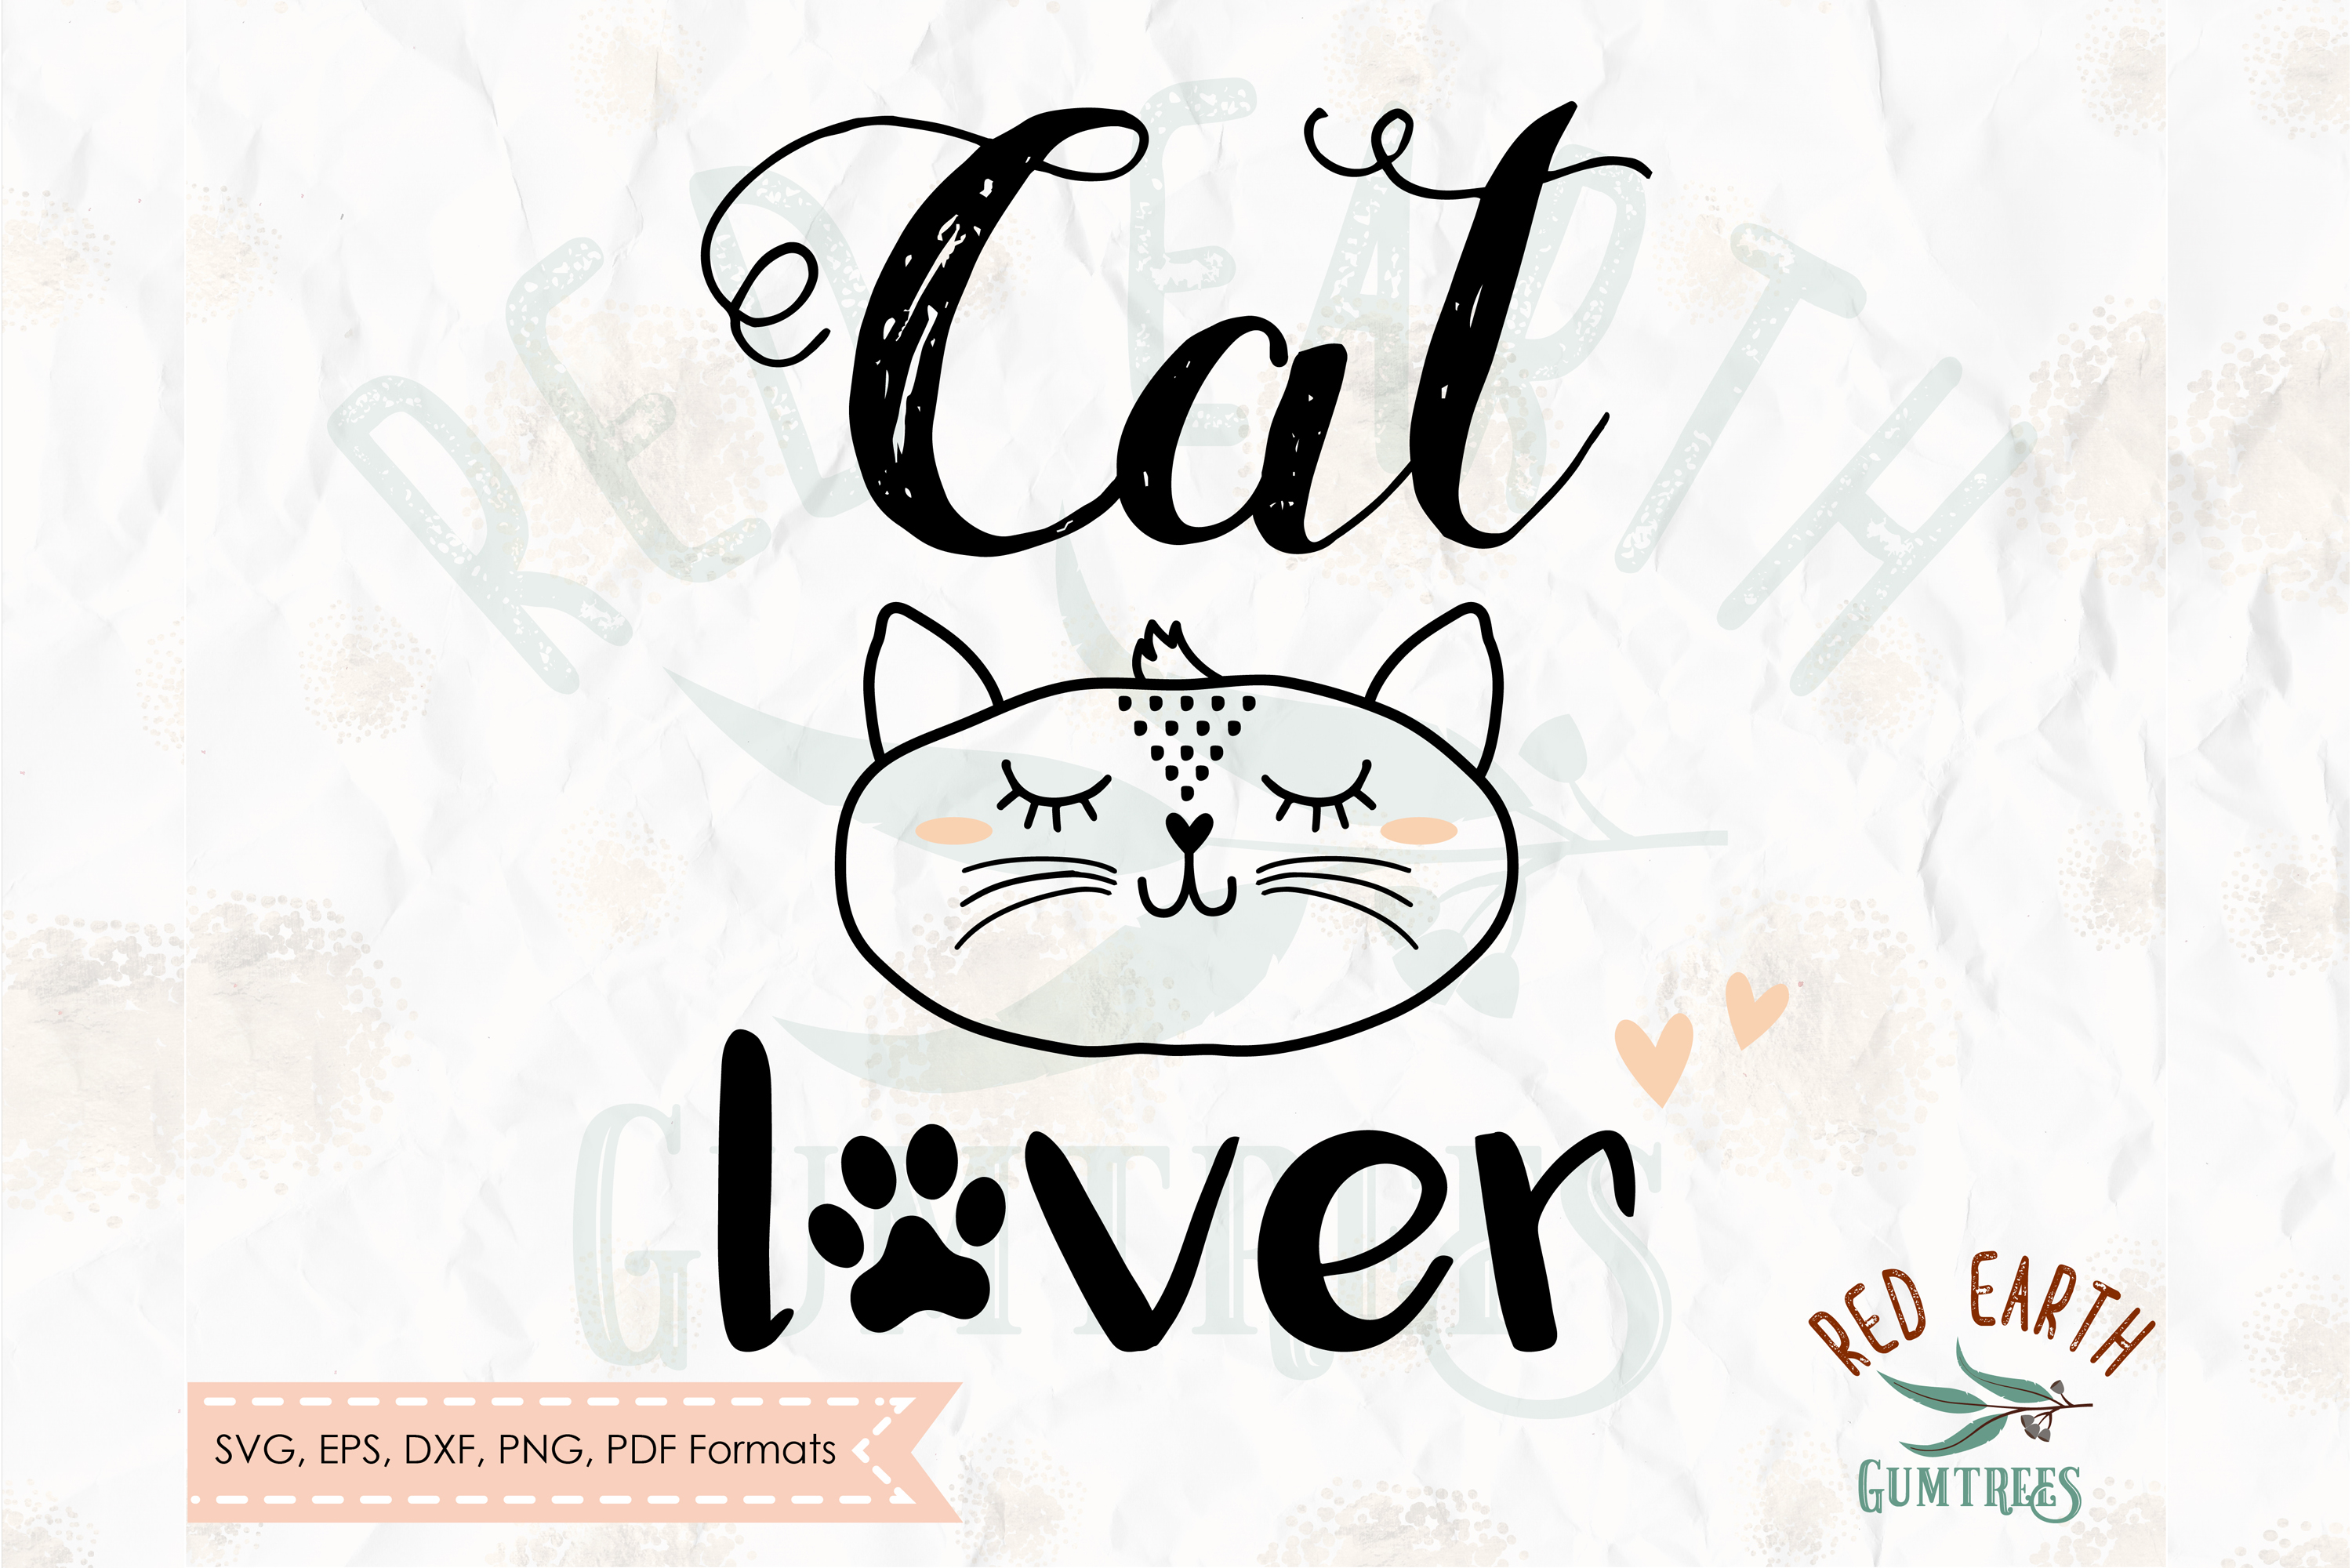 Cat lover, cat with lashes in SVG,DXF,PNG,EPS, PDF formats example image 2